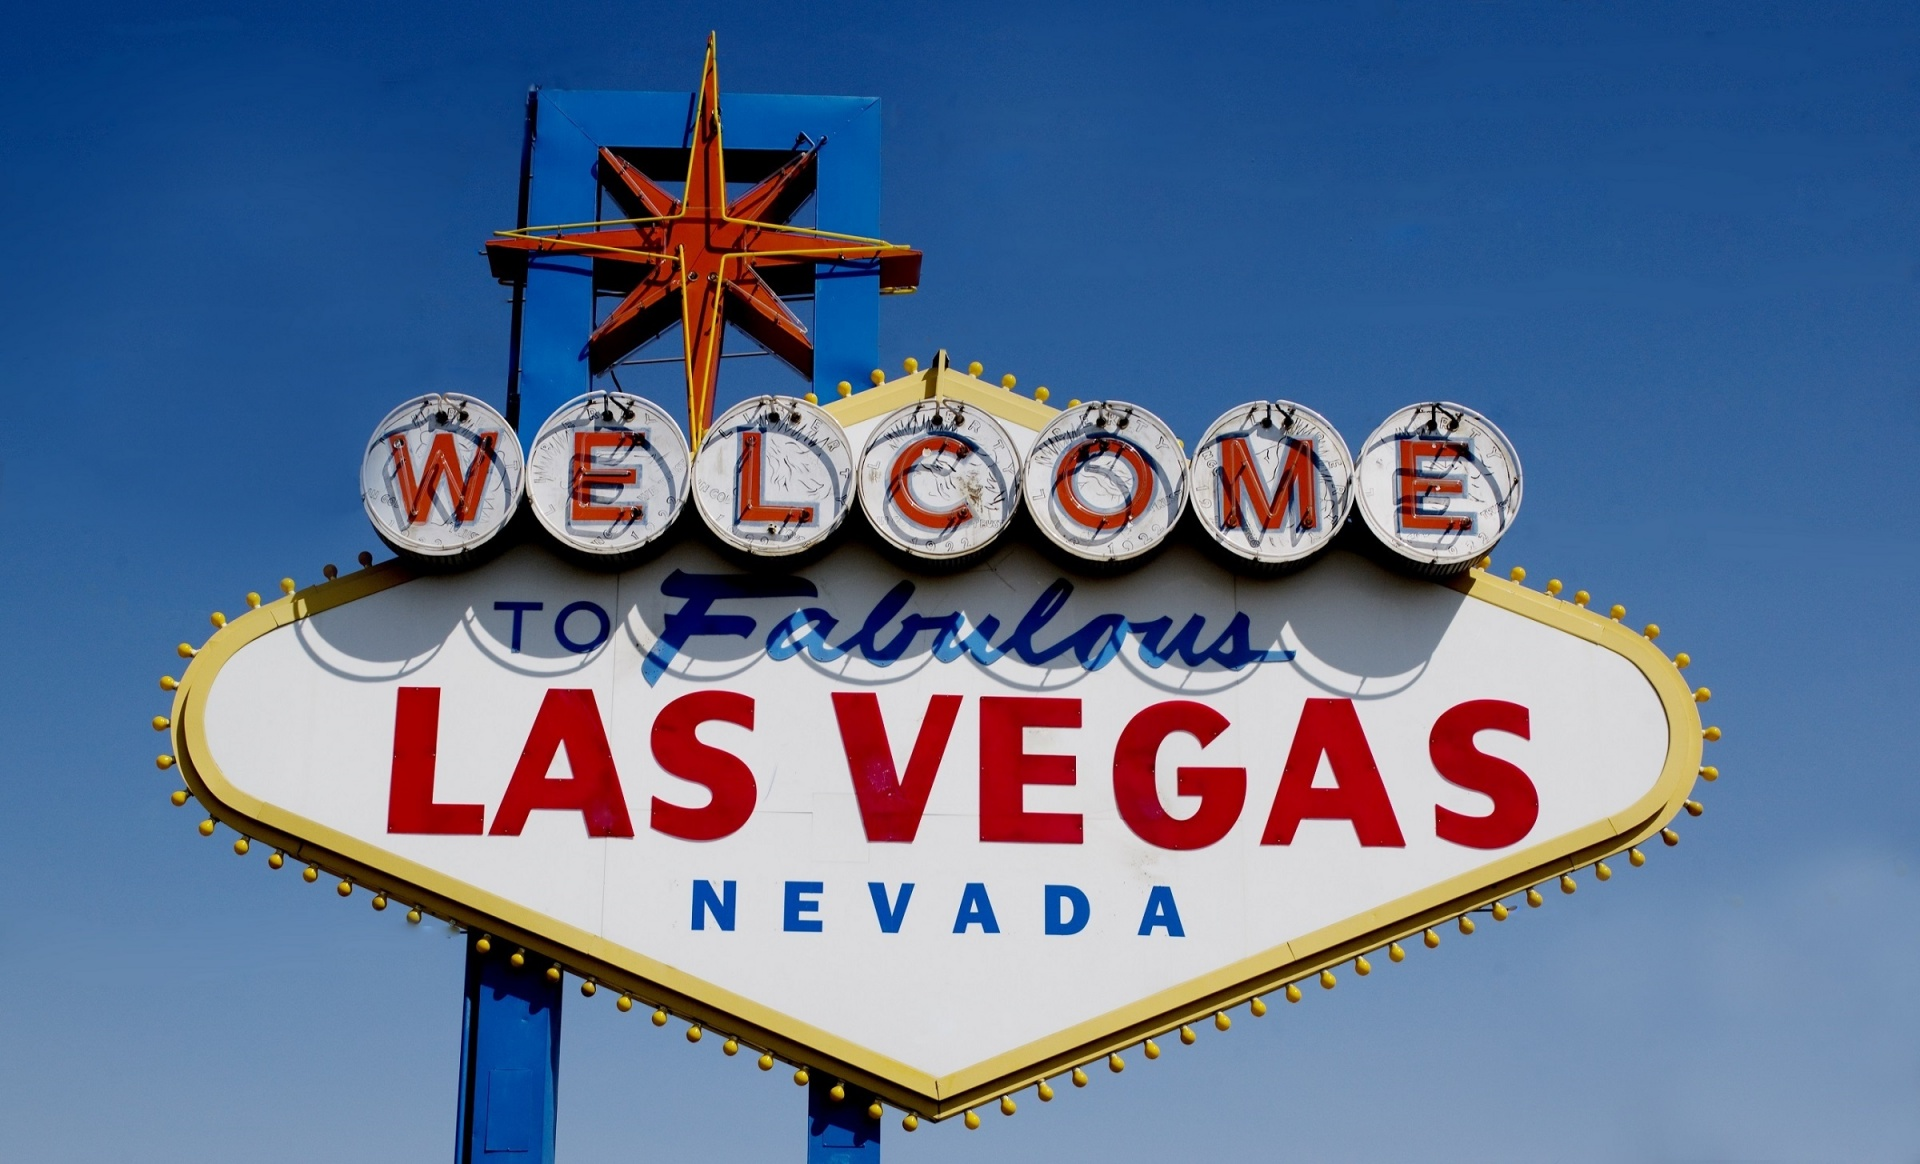 Las Vegas, 3 or 7 nights flying with Virgin Atlantic